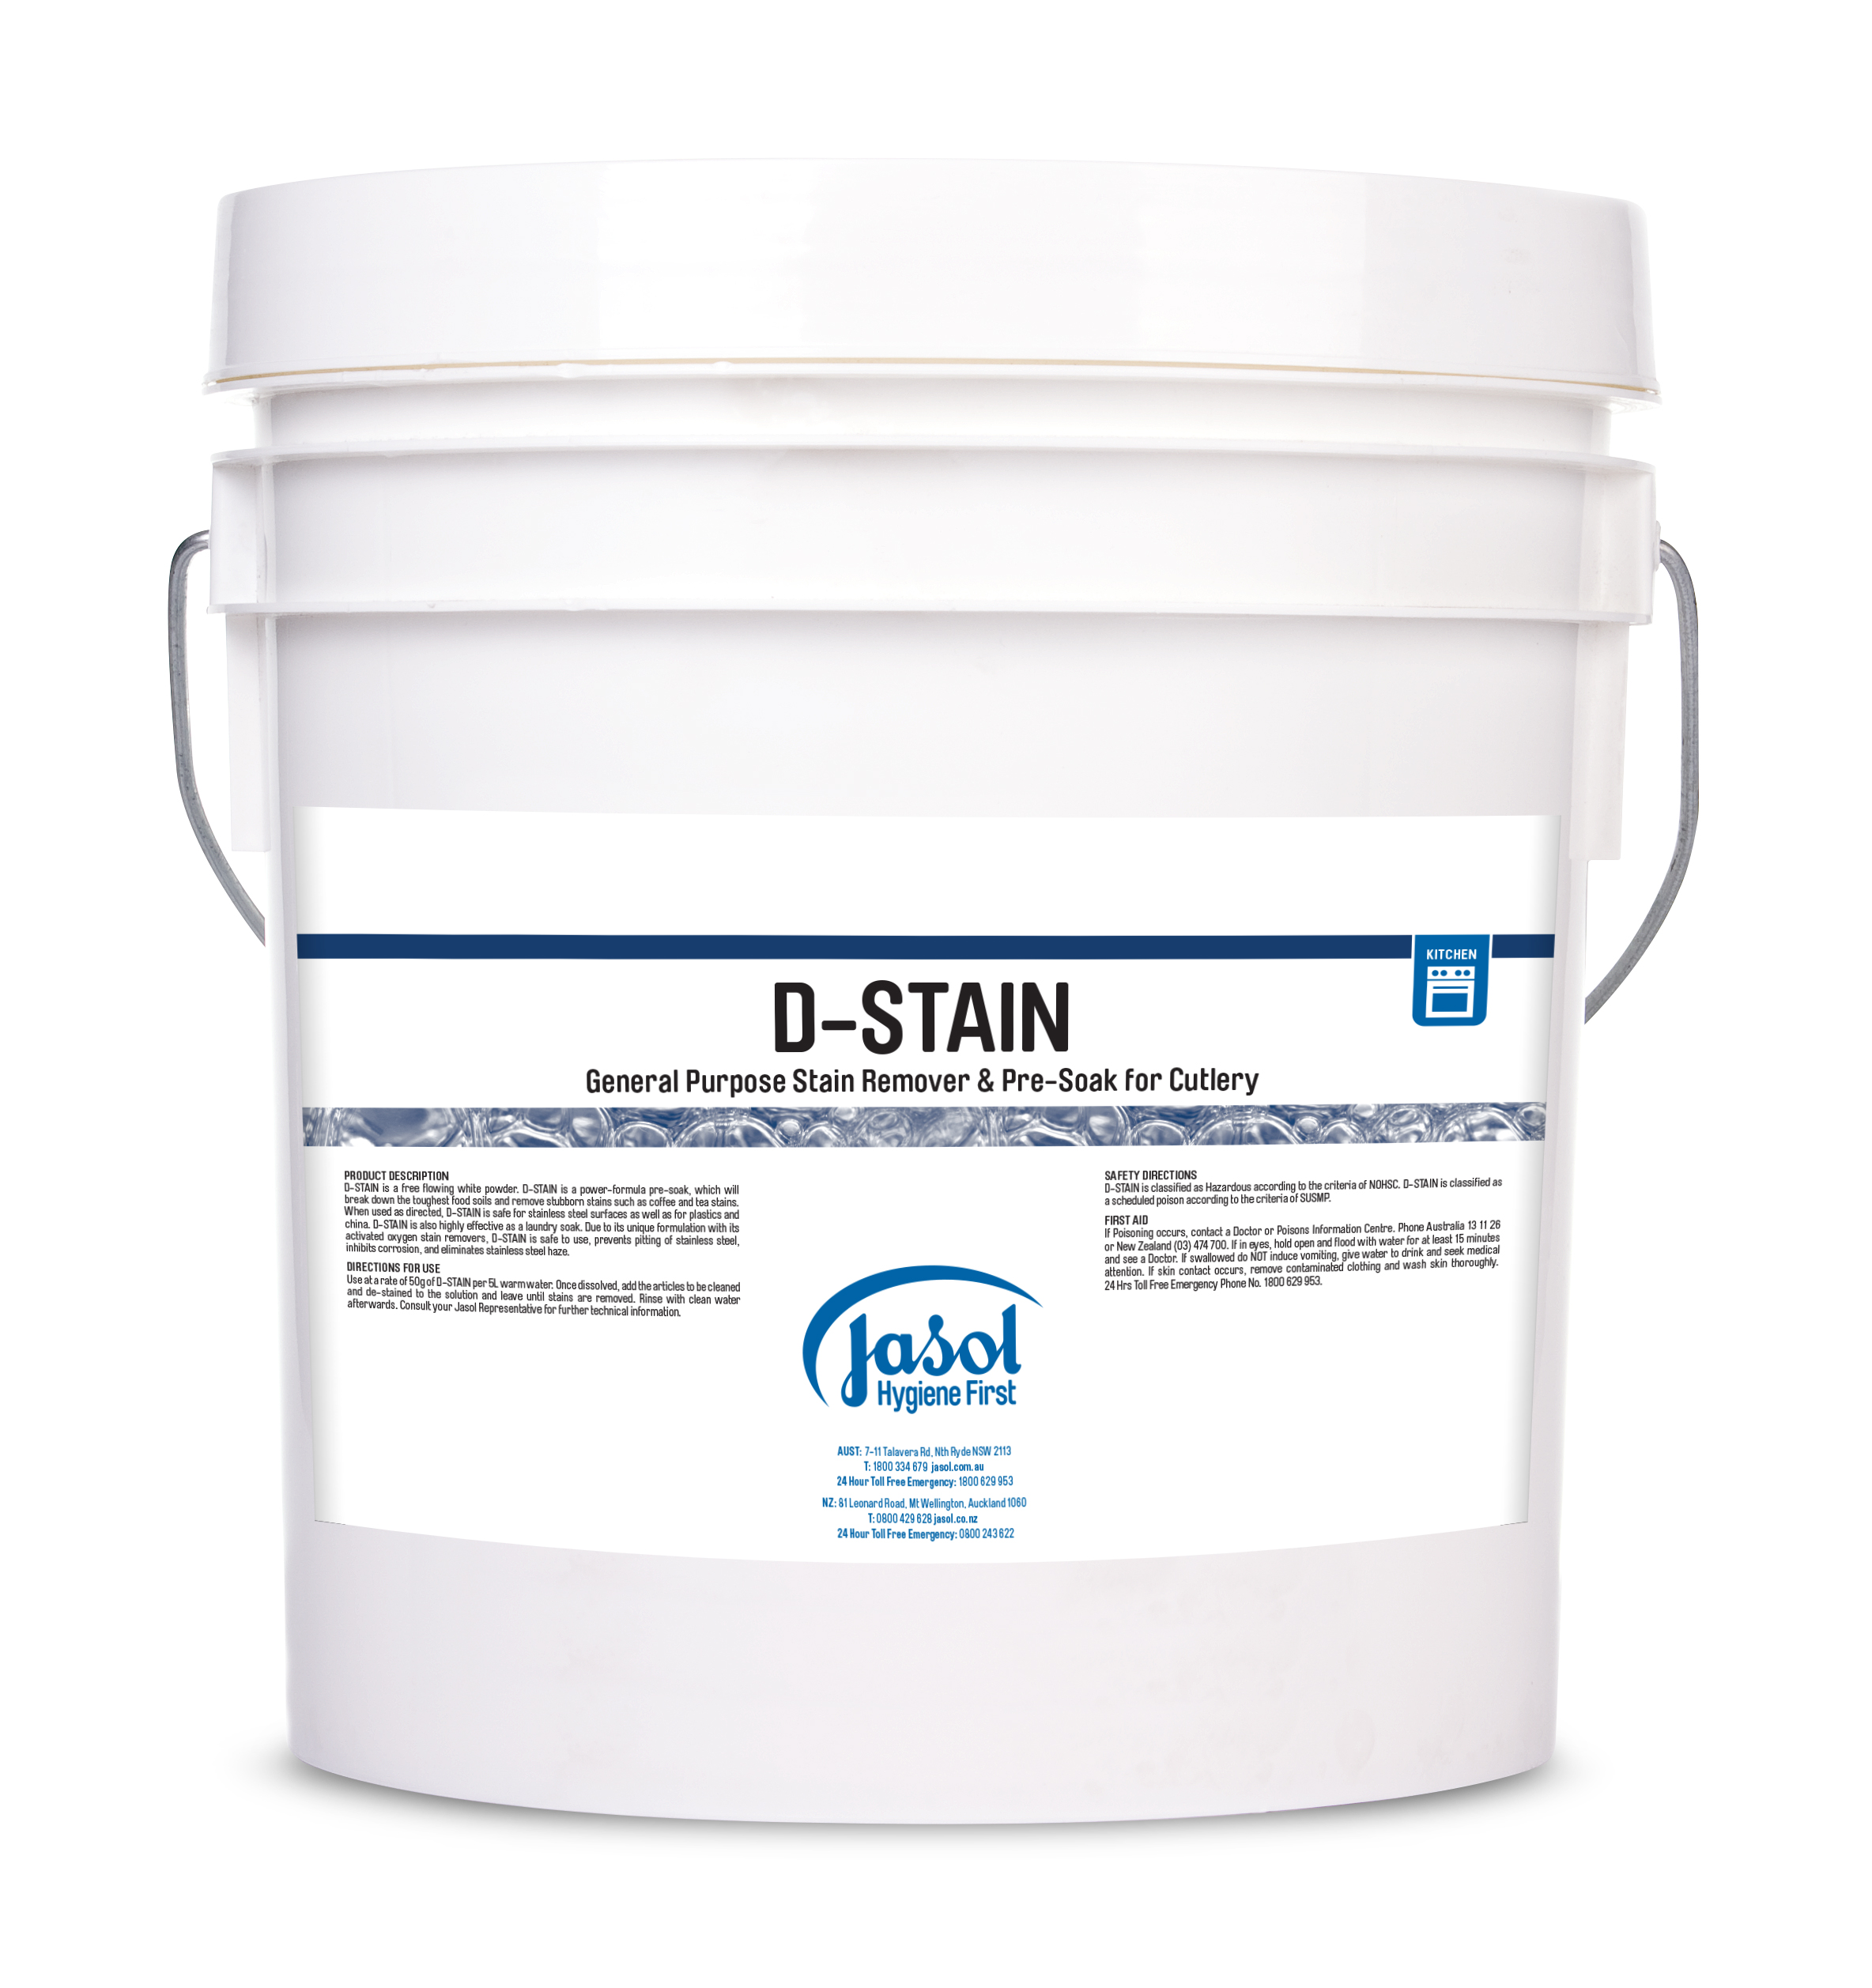 D-Stain